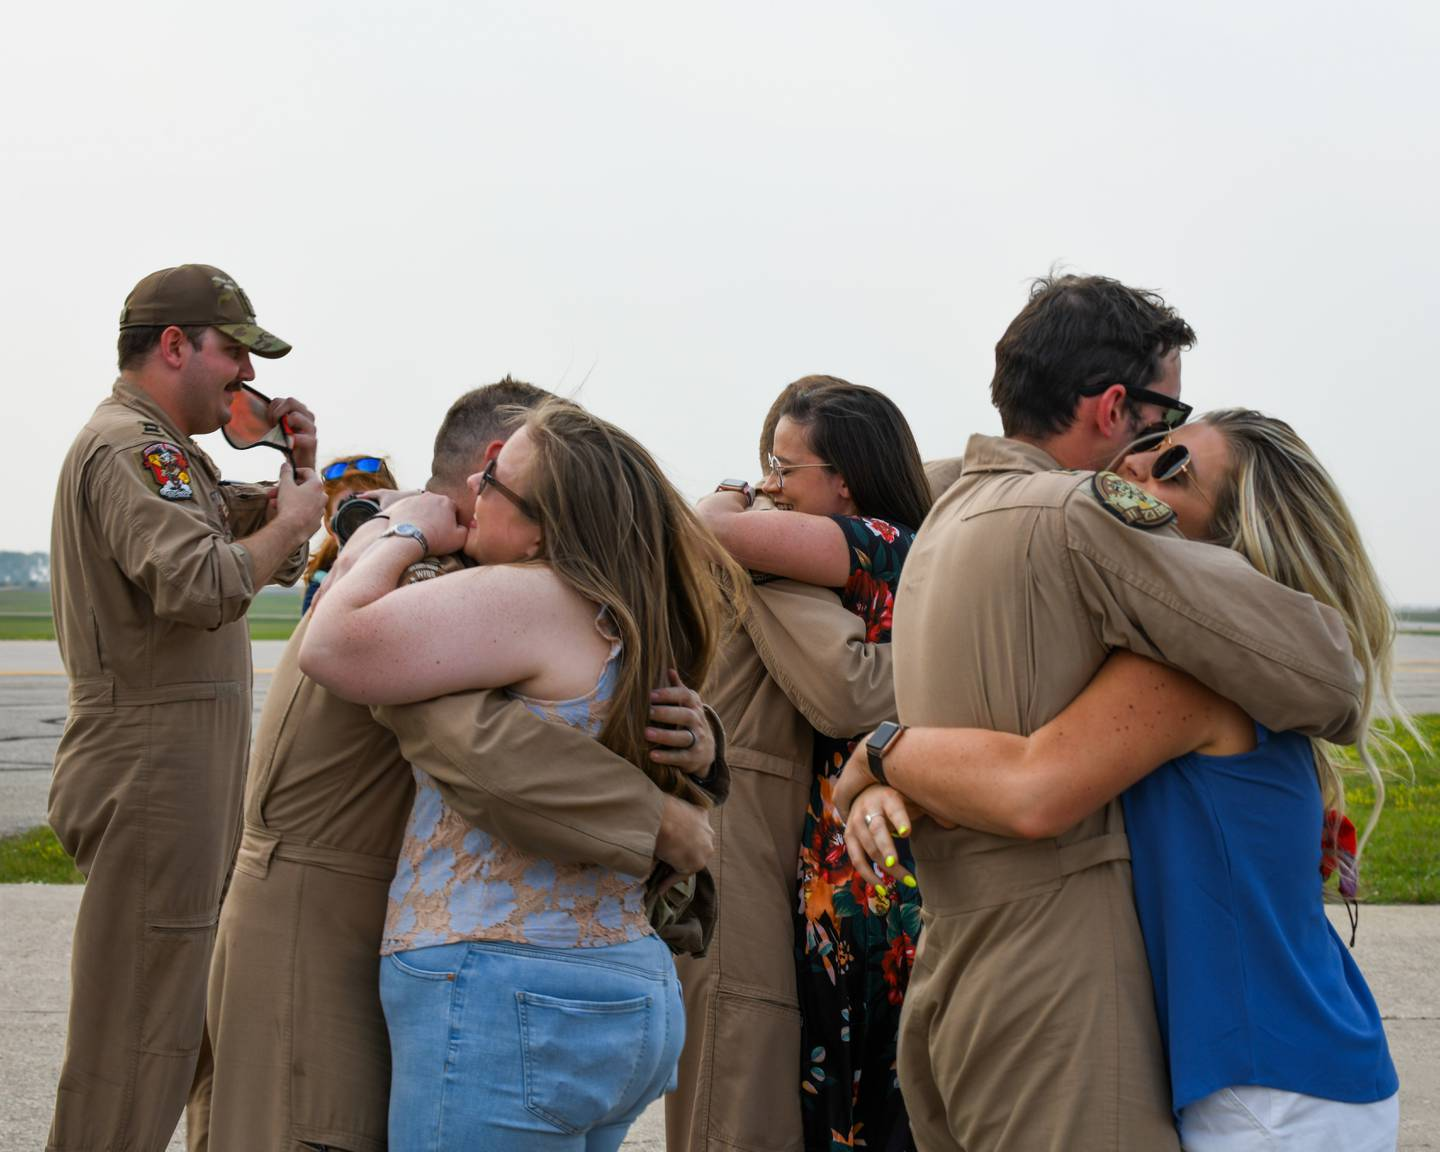 Spouses at Minot Air Force Base, North Dakota, reunited with their husbands who safely returned from deployment on Sept. 10, 2021. The aircrews that arrived were from the 23rd Bomb Squadron. (Airman 1st Class Saomy Sabournin/Air Force)